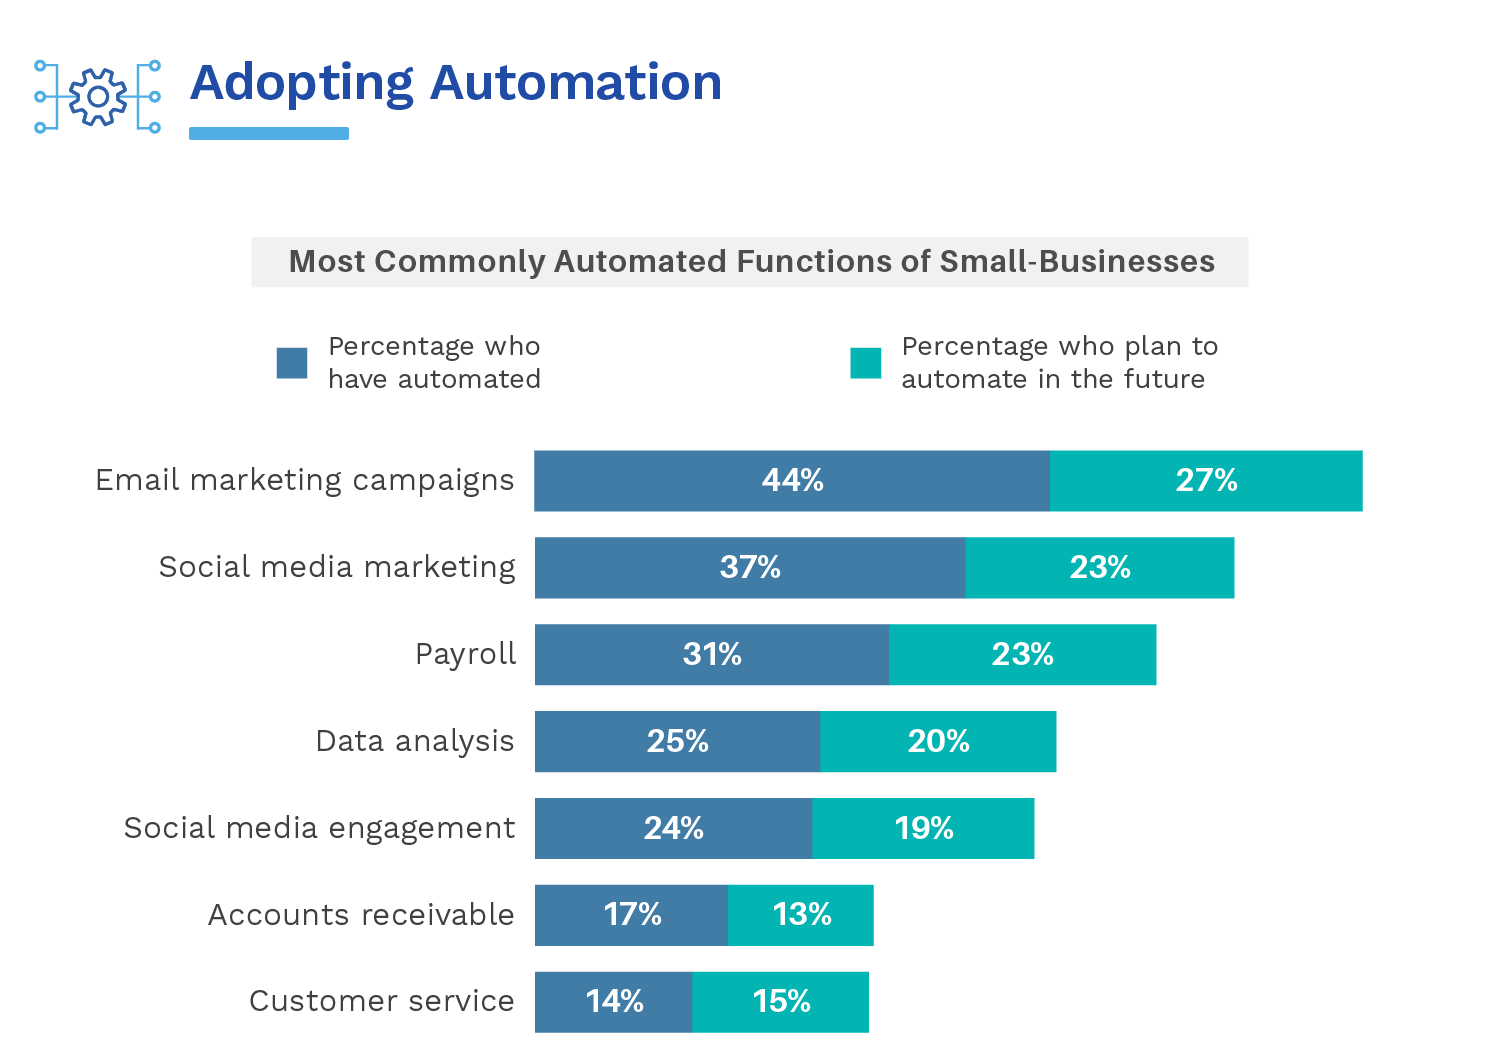 A Study Reveals What Automated Technology Small Business Owners Do Or Do Not Employ / Digital Information World